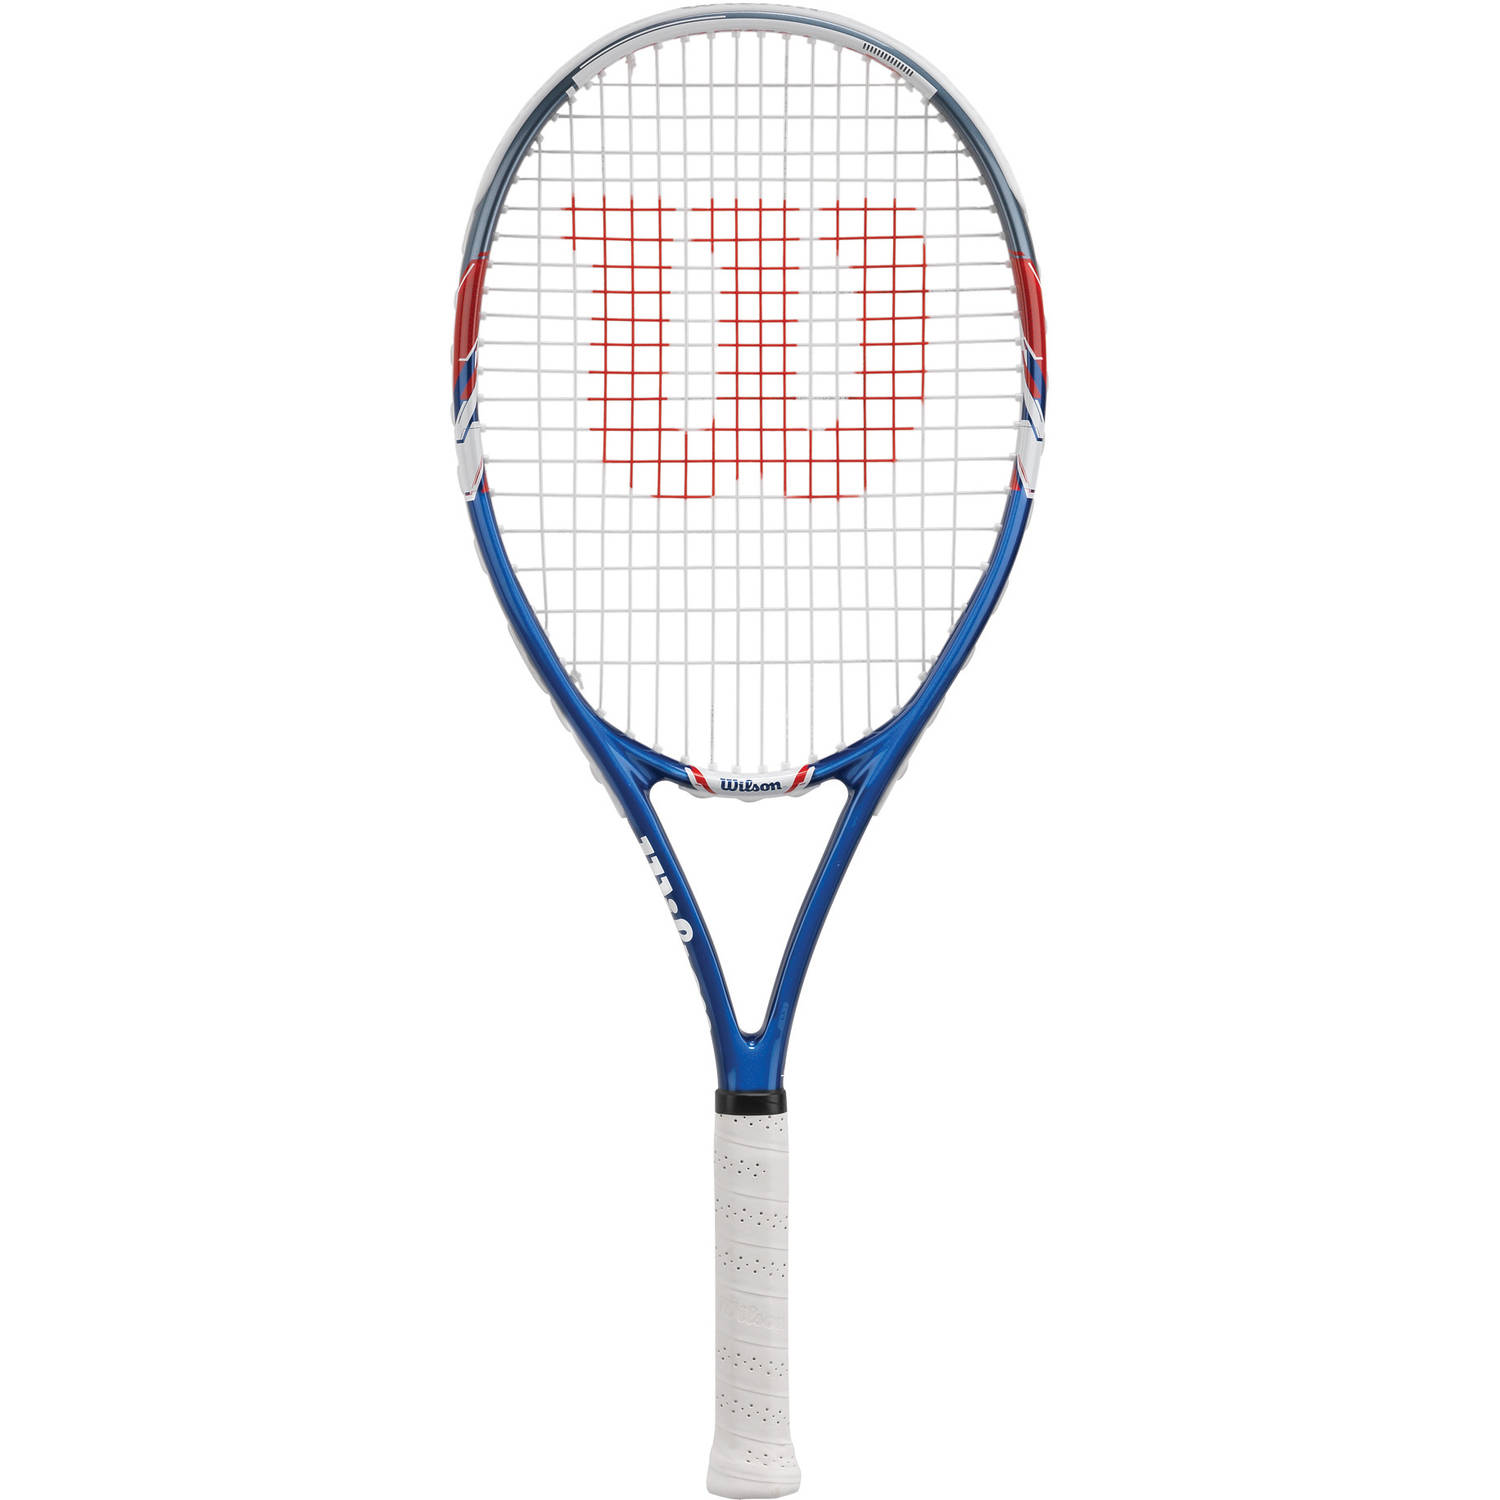 "Wilson US Open Tennis Racket w  4.25"" Grip by Wilson Racquet Sports"